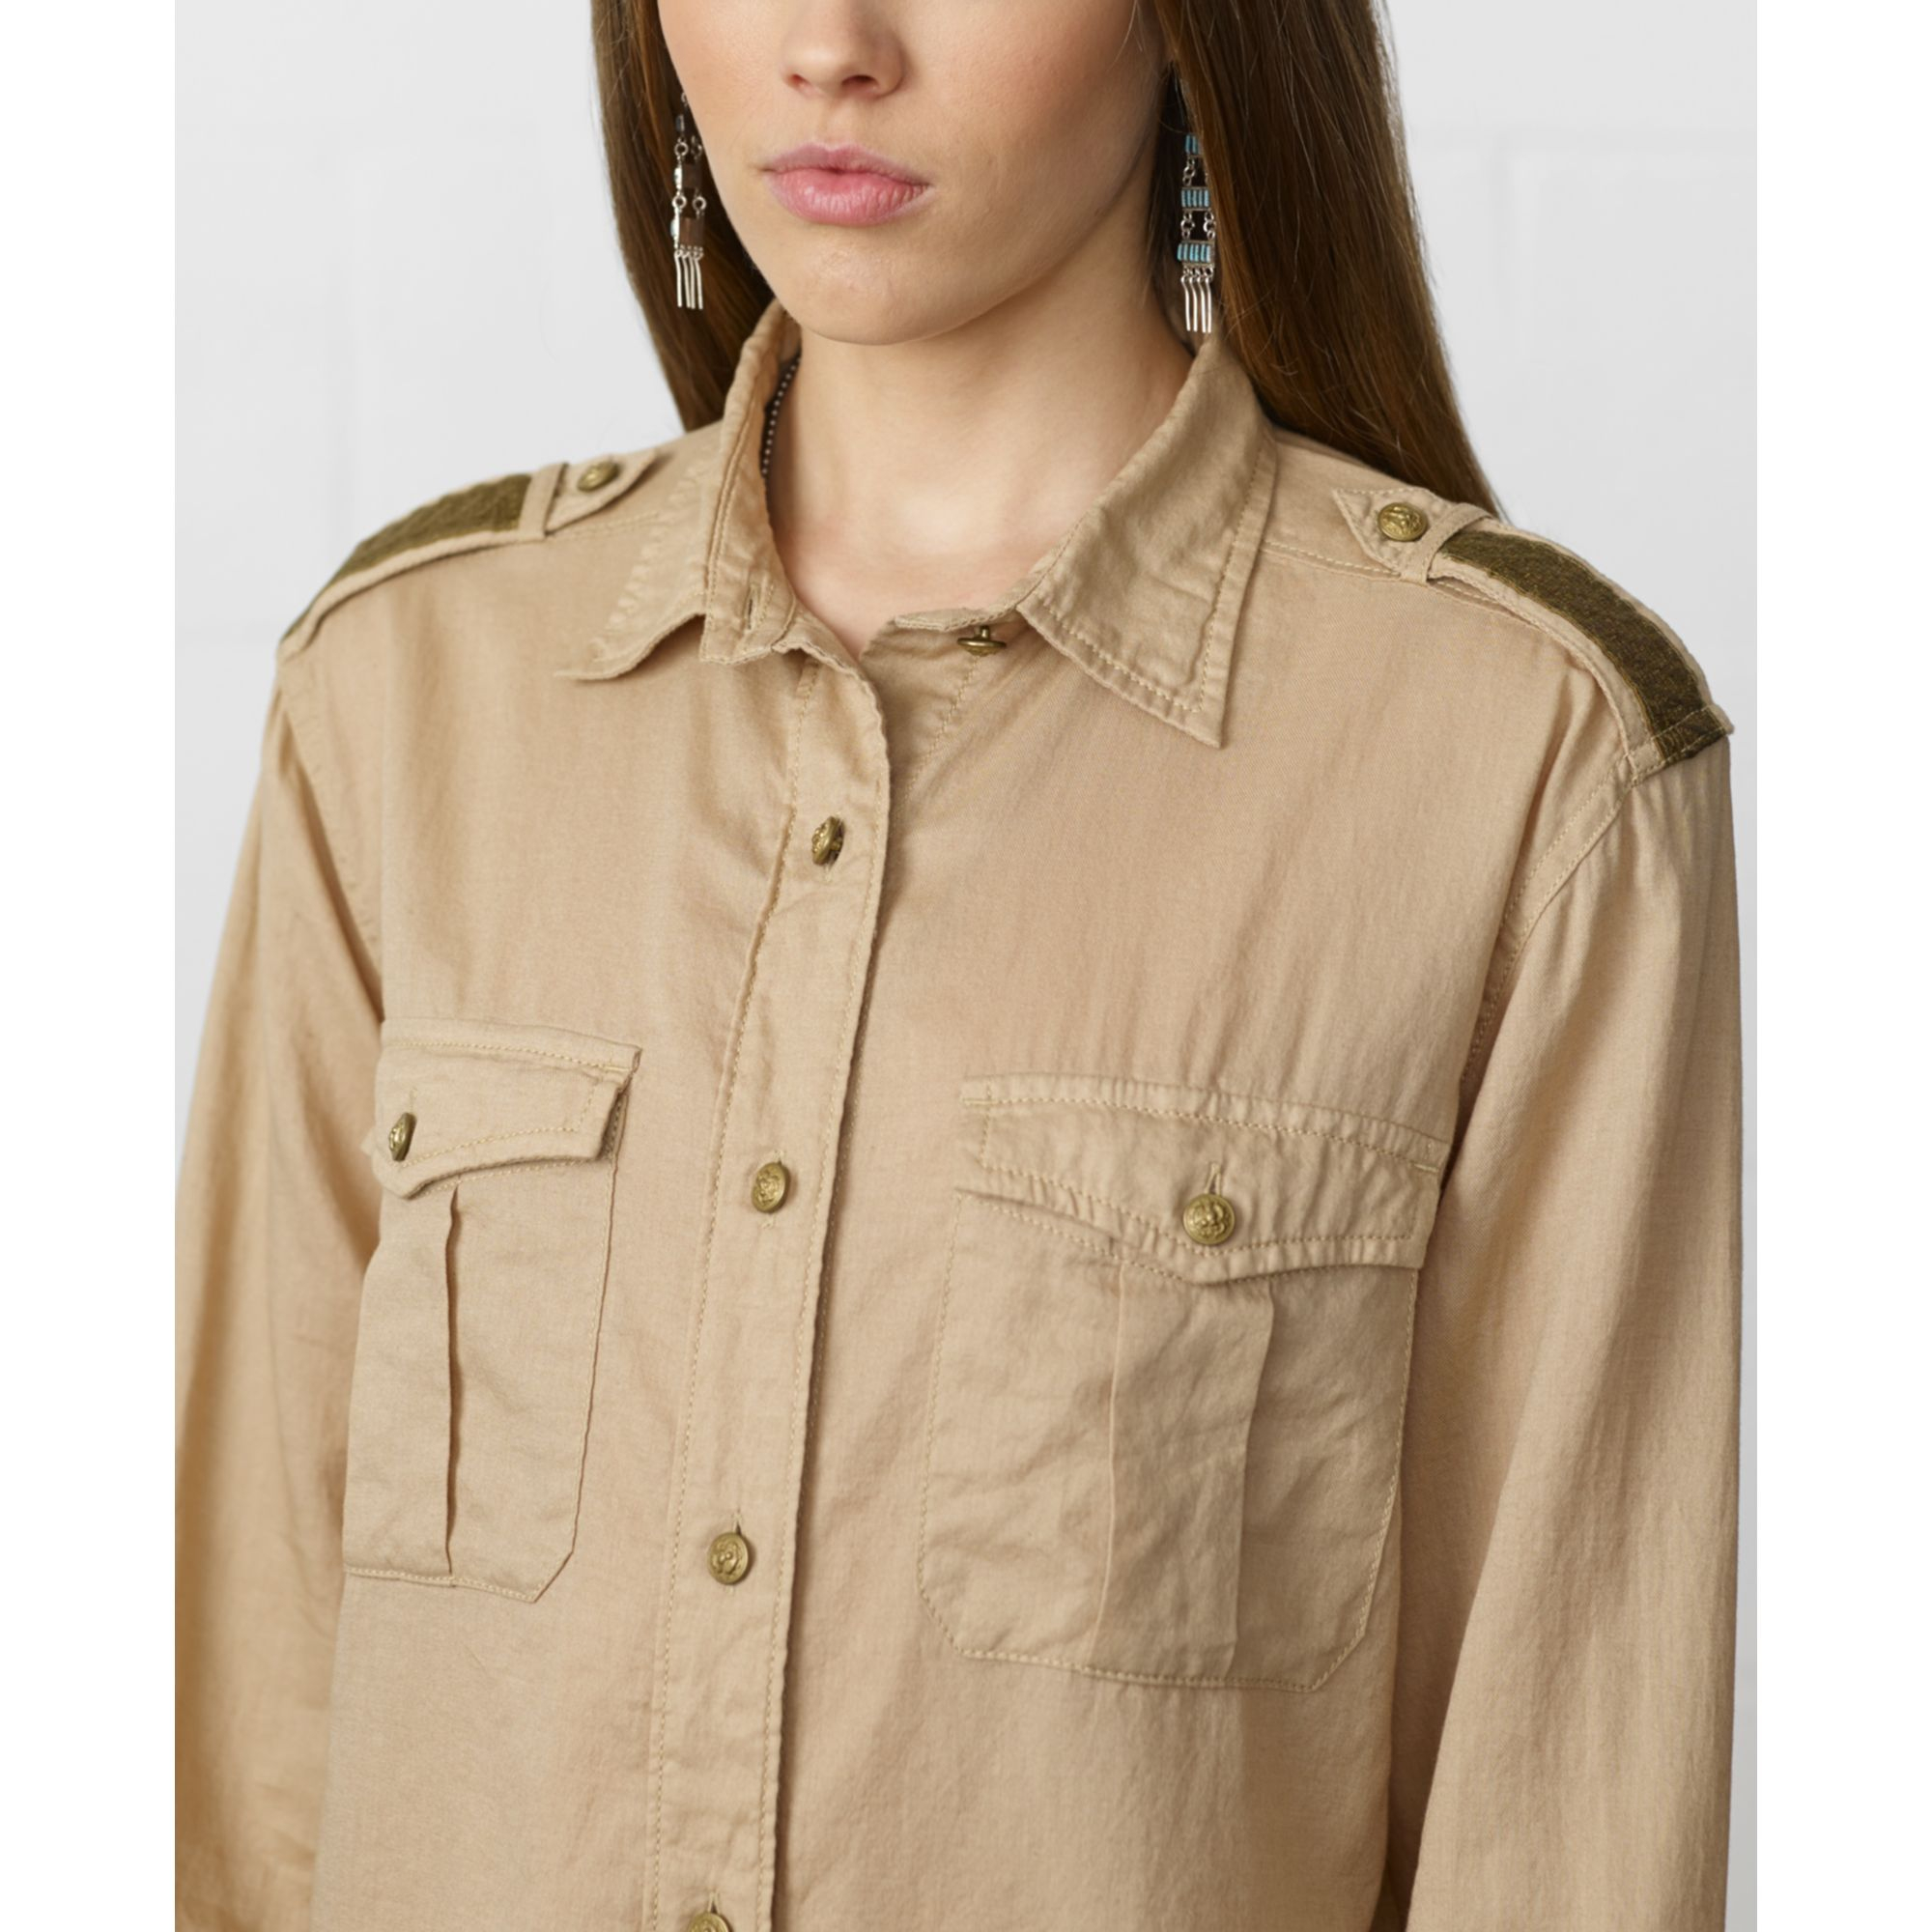 denim supply ralph lauren longsleeve military shirt in natural lyst. Black Bedroom Furniture Sets. Home Design Ideas